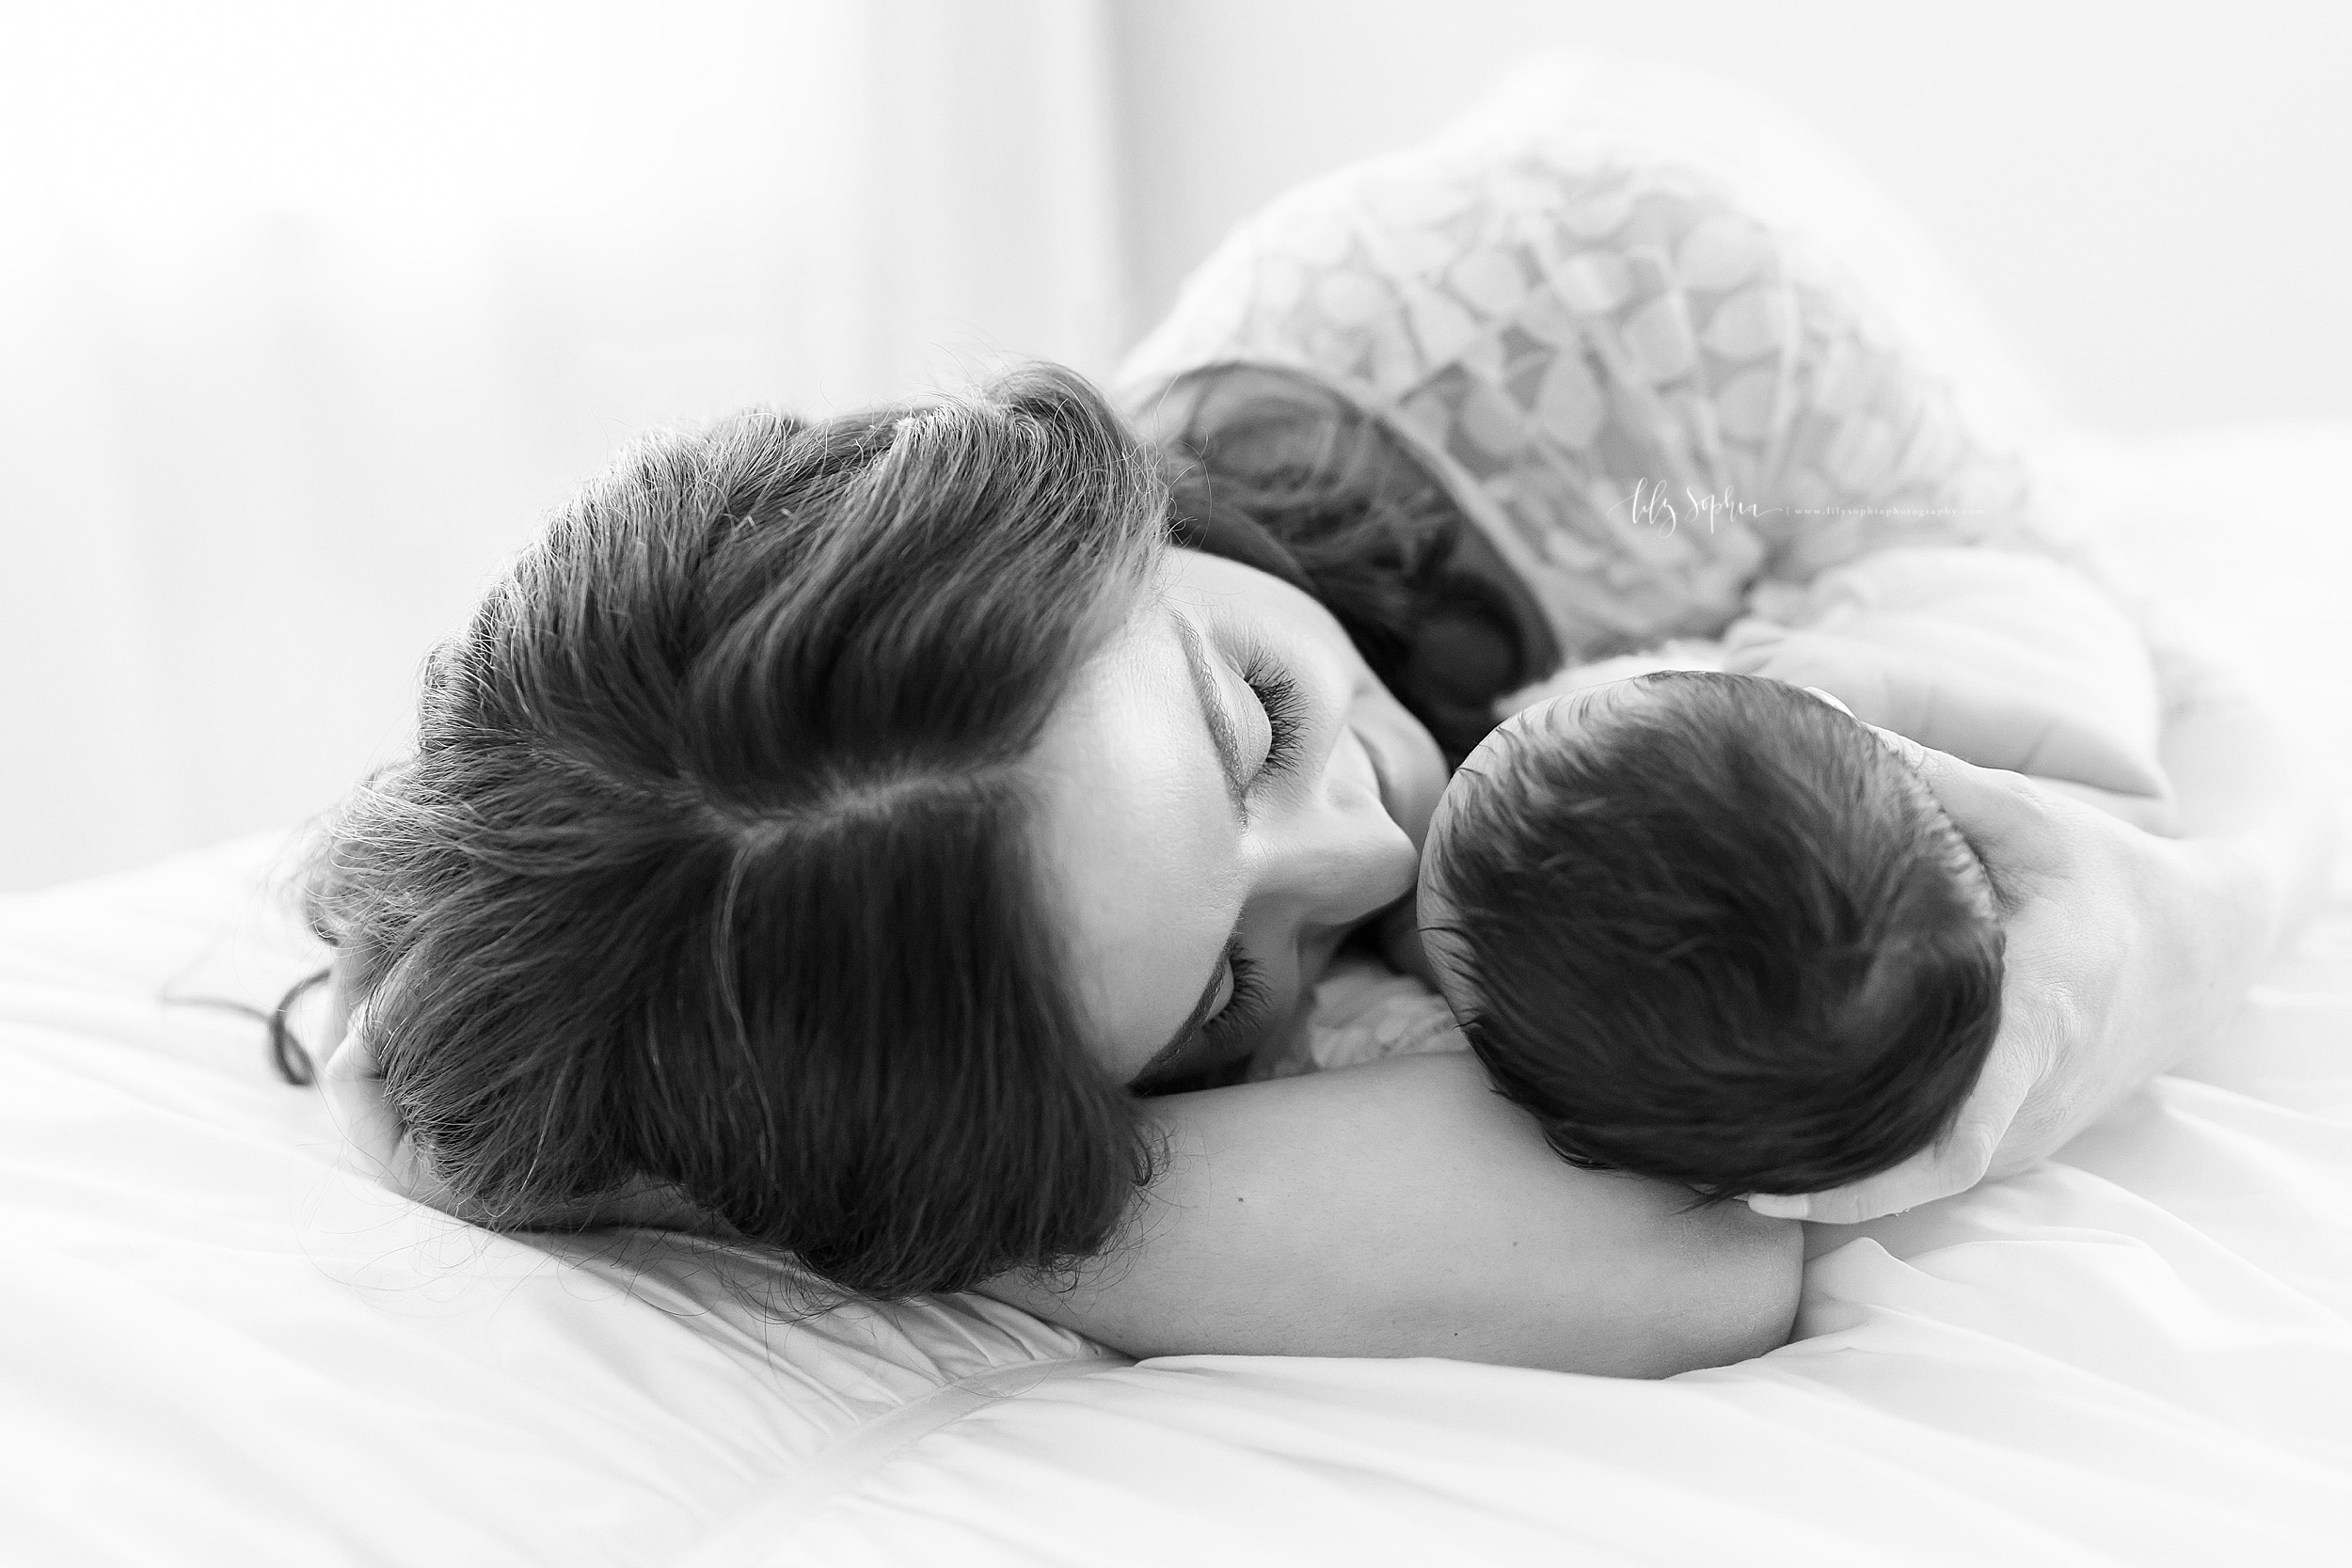 Black and White photograph of a newborn baby girl and her mom laying on a bed. The two are face to face with the baby laying on her mother's bent right arm as natural light flows in a window.